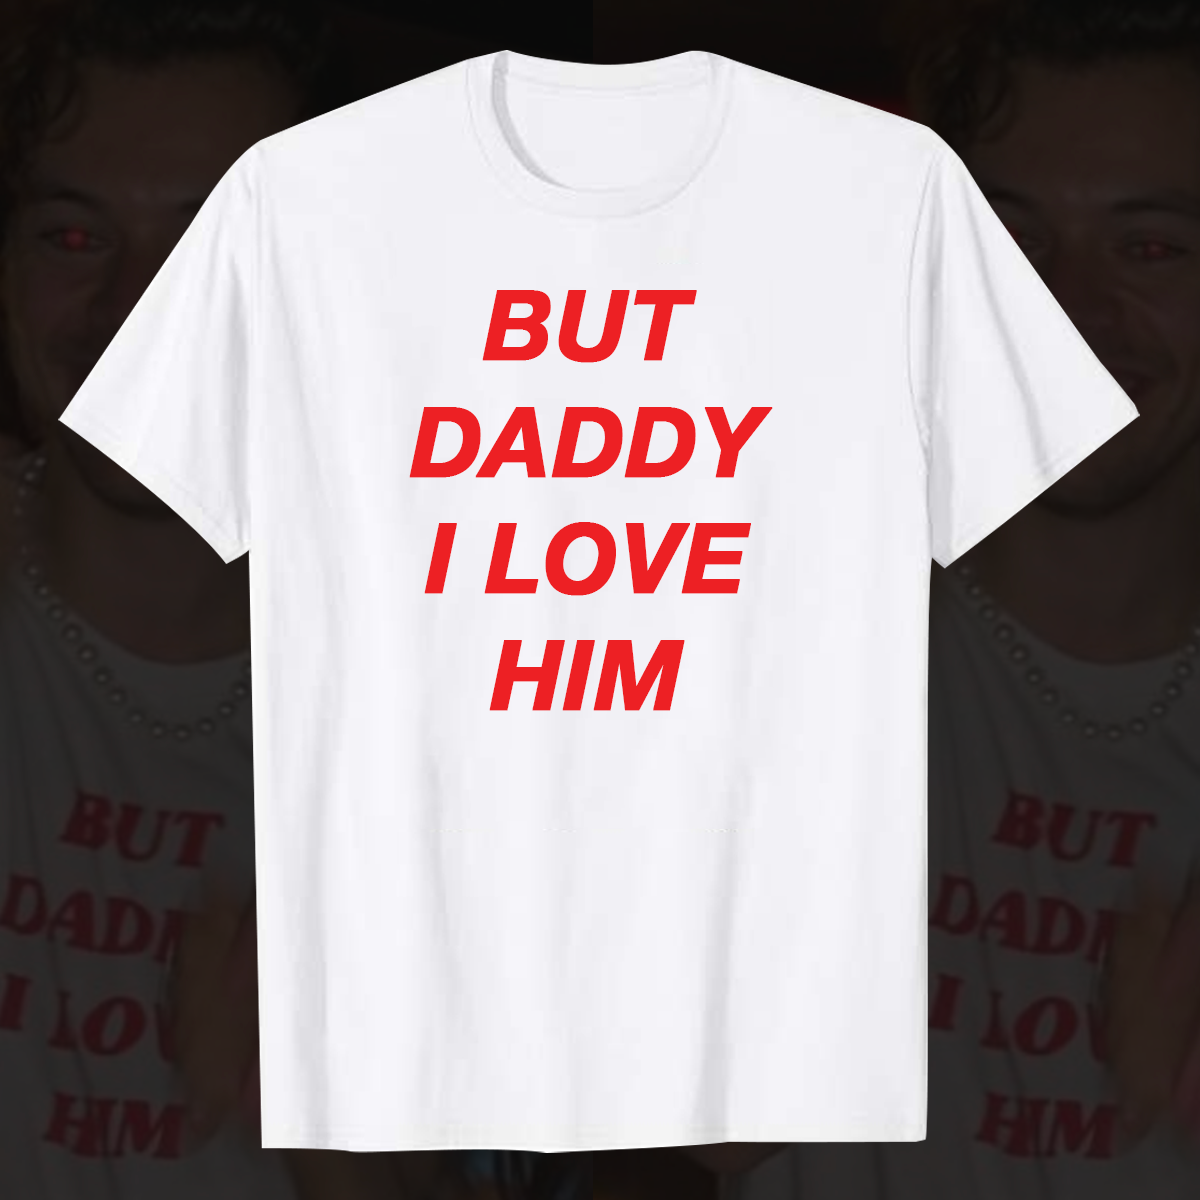 Harry Styles Shirt But Daddy I Love Him Shirt Harry Styles But Daddy I Love Him